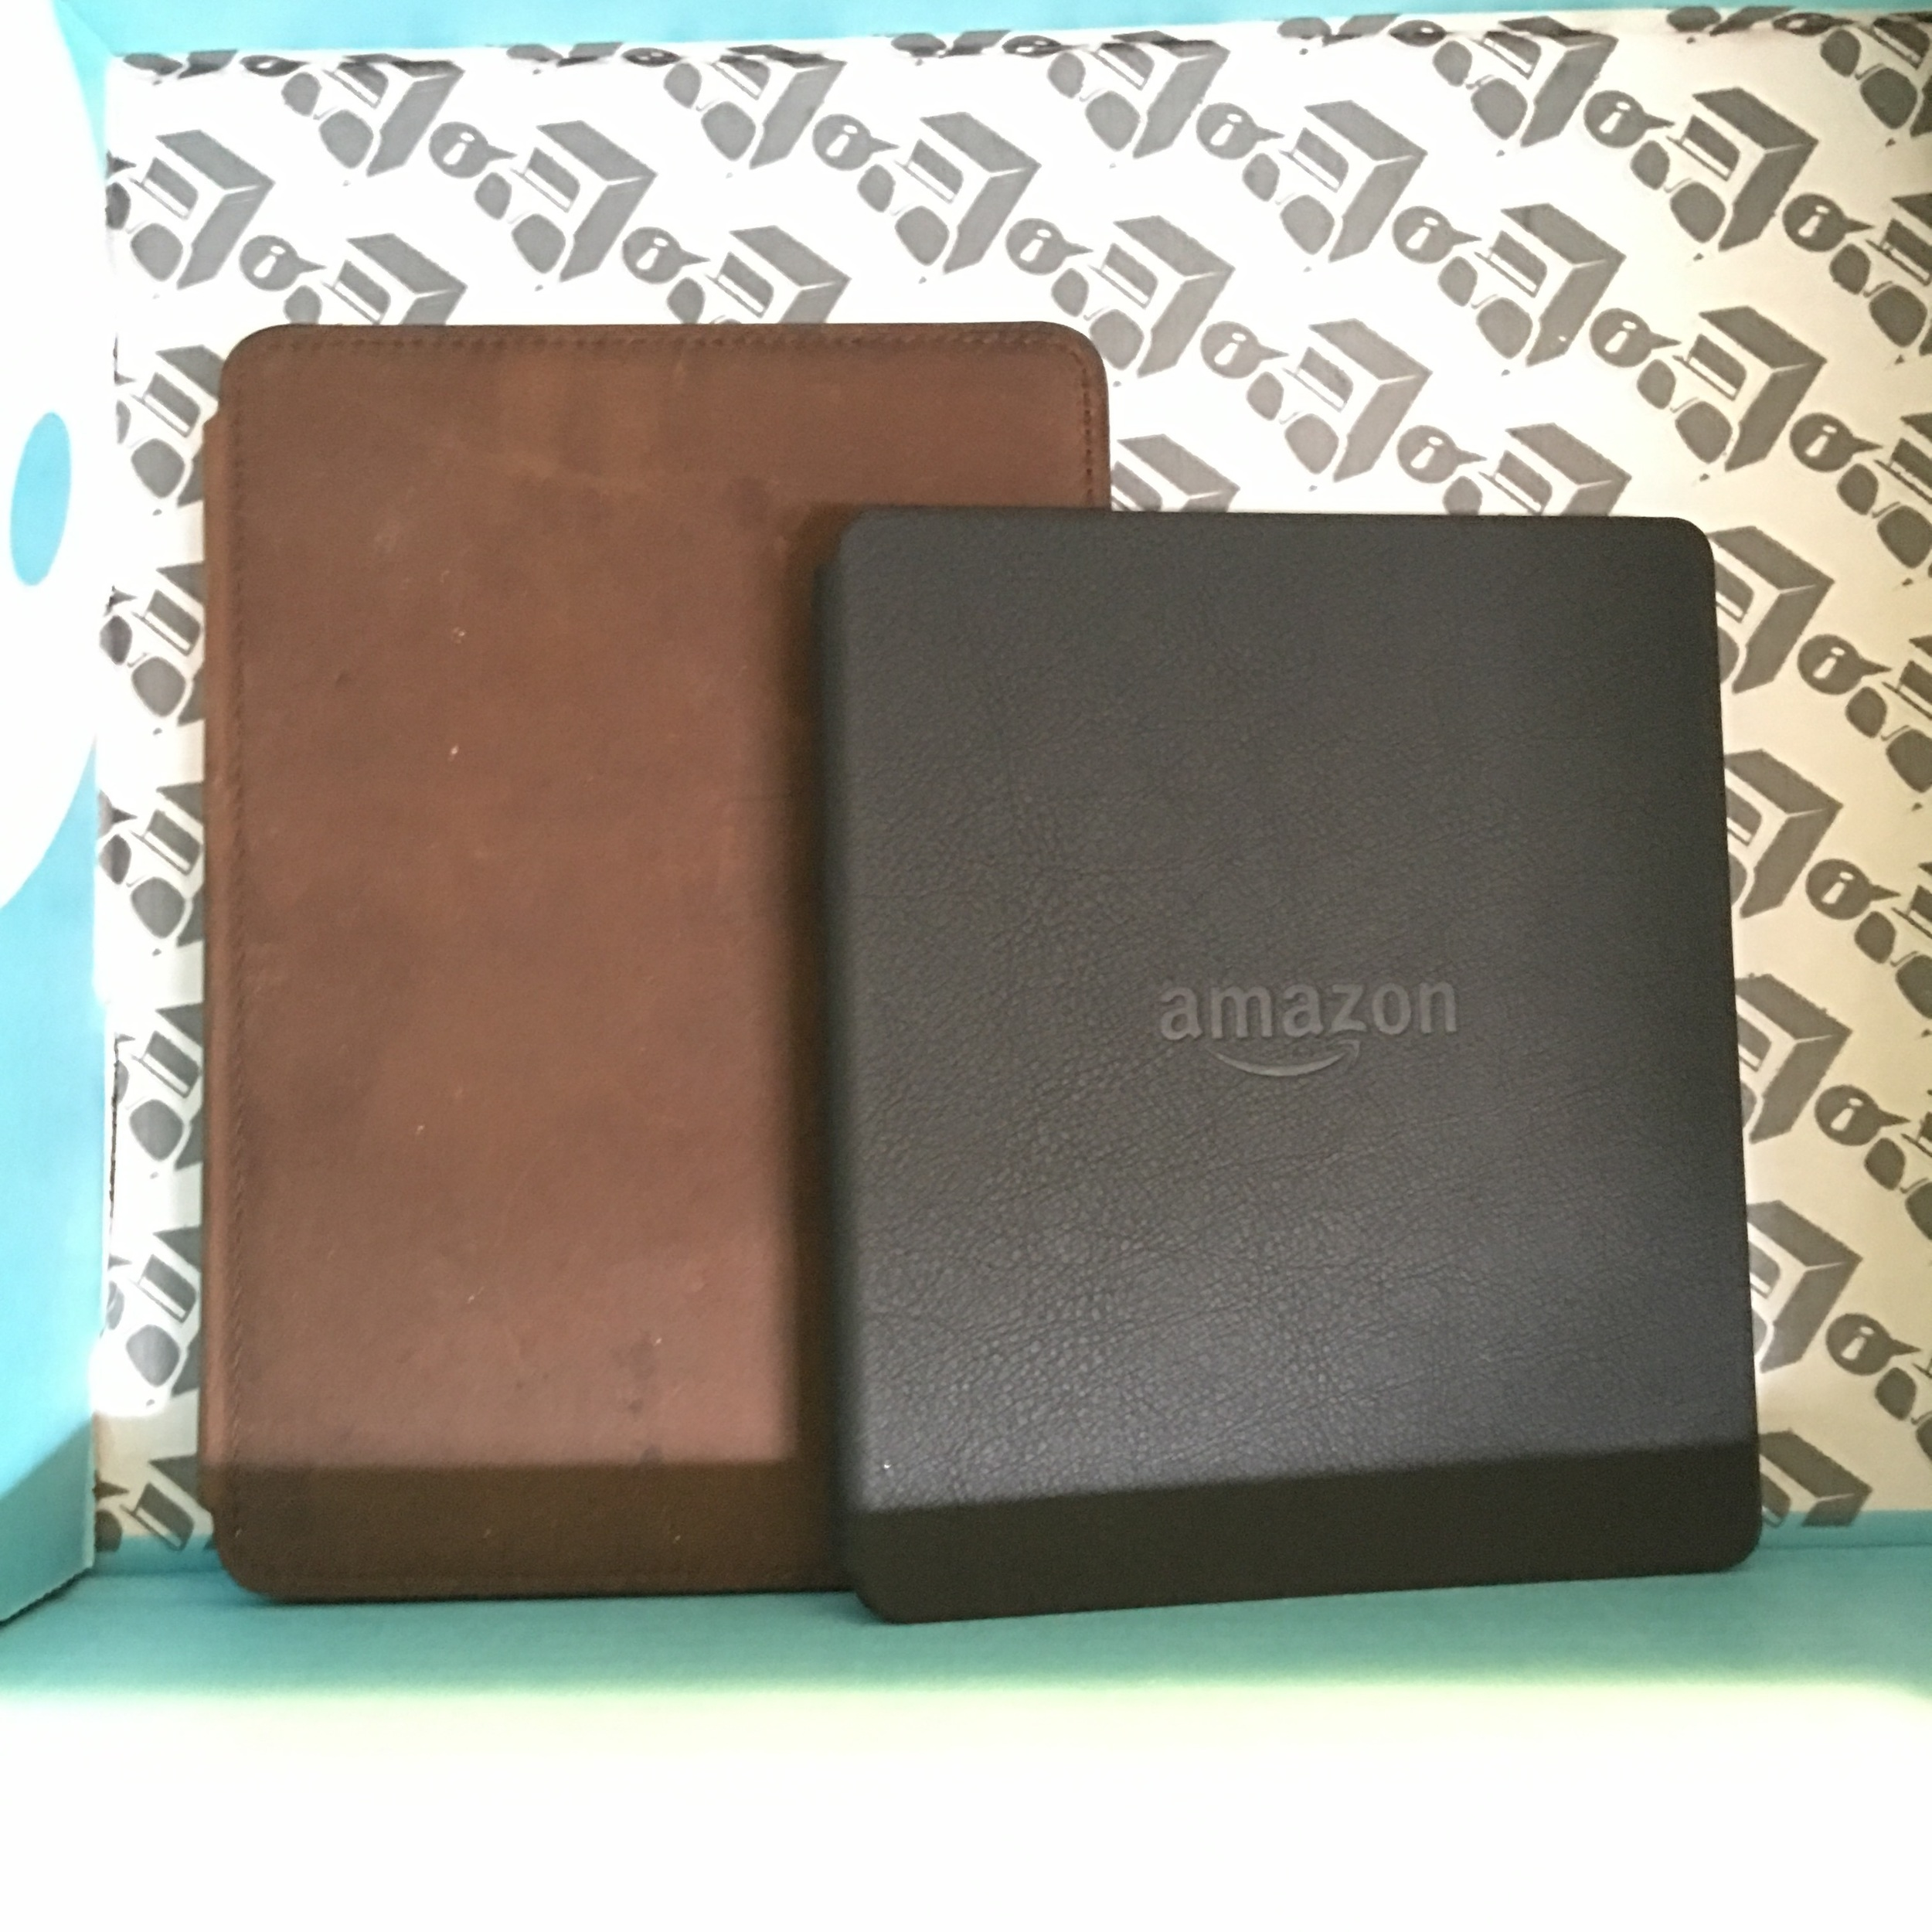 The 2015 Paperwhite in brown, new Oasis in black